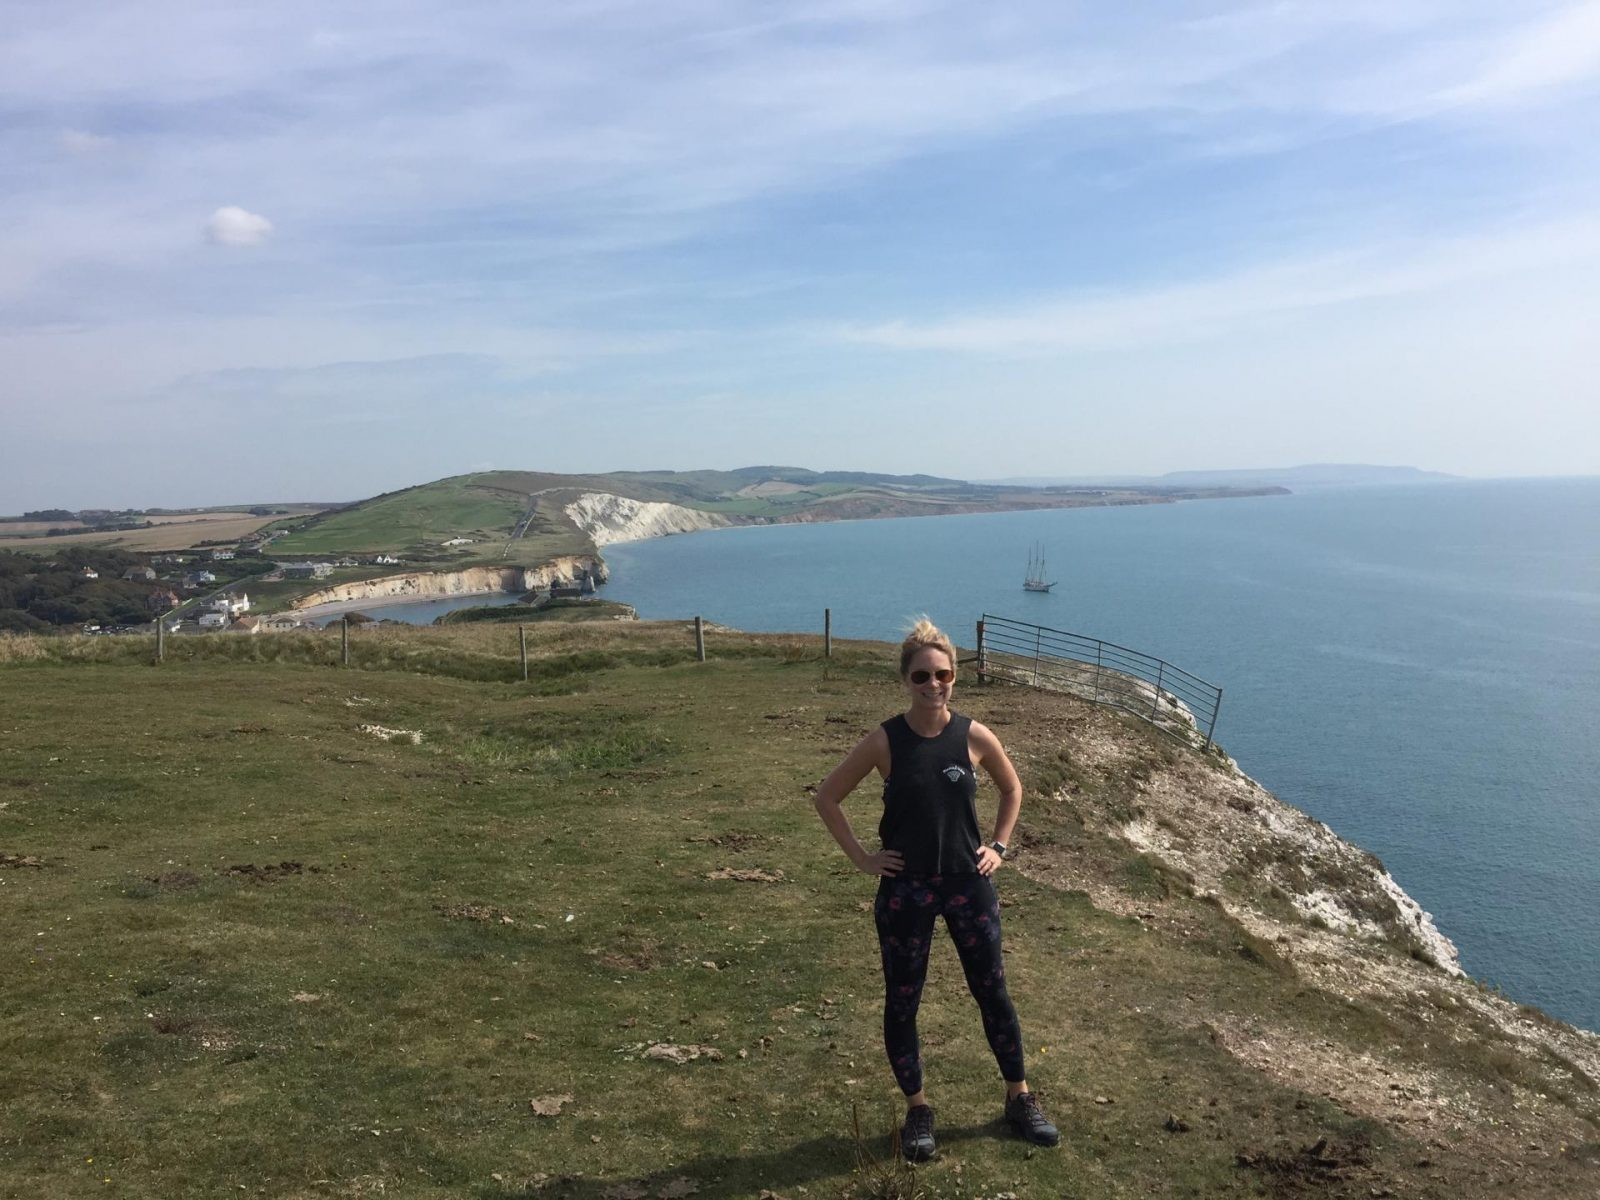 Hiking in the Isle of Wight